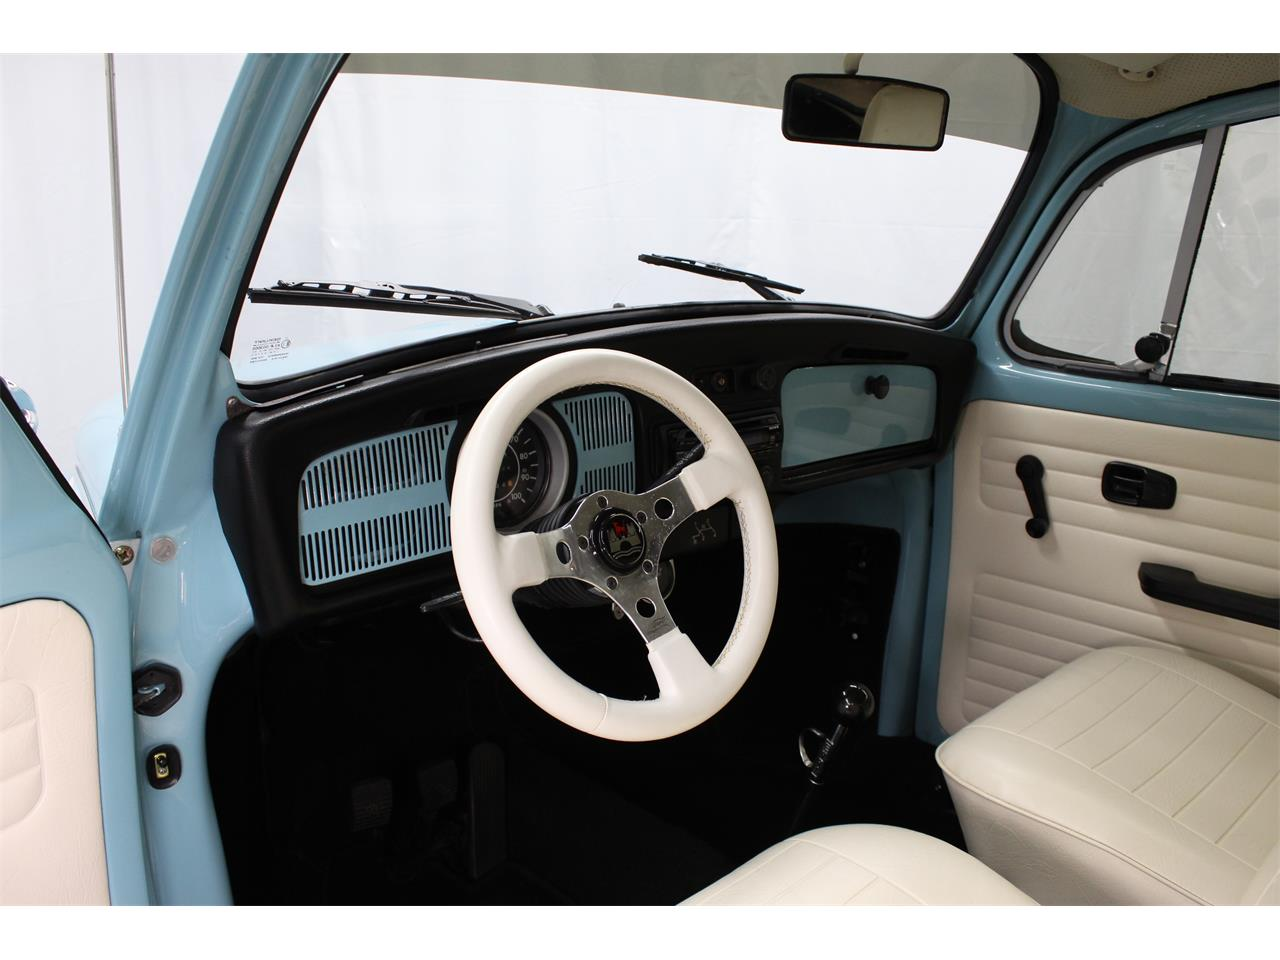 1974 Volkswagen Beetle for sale in Christiansburg, VA – photo 16